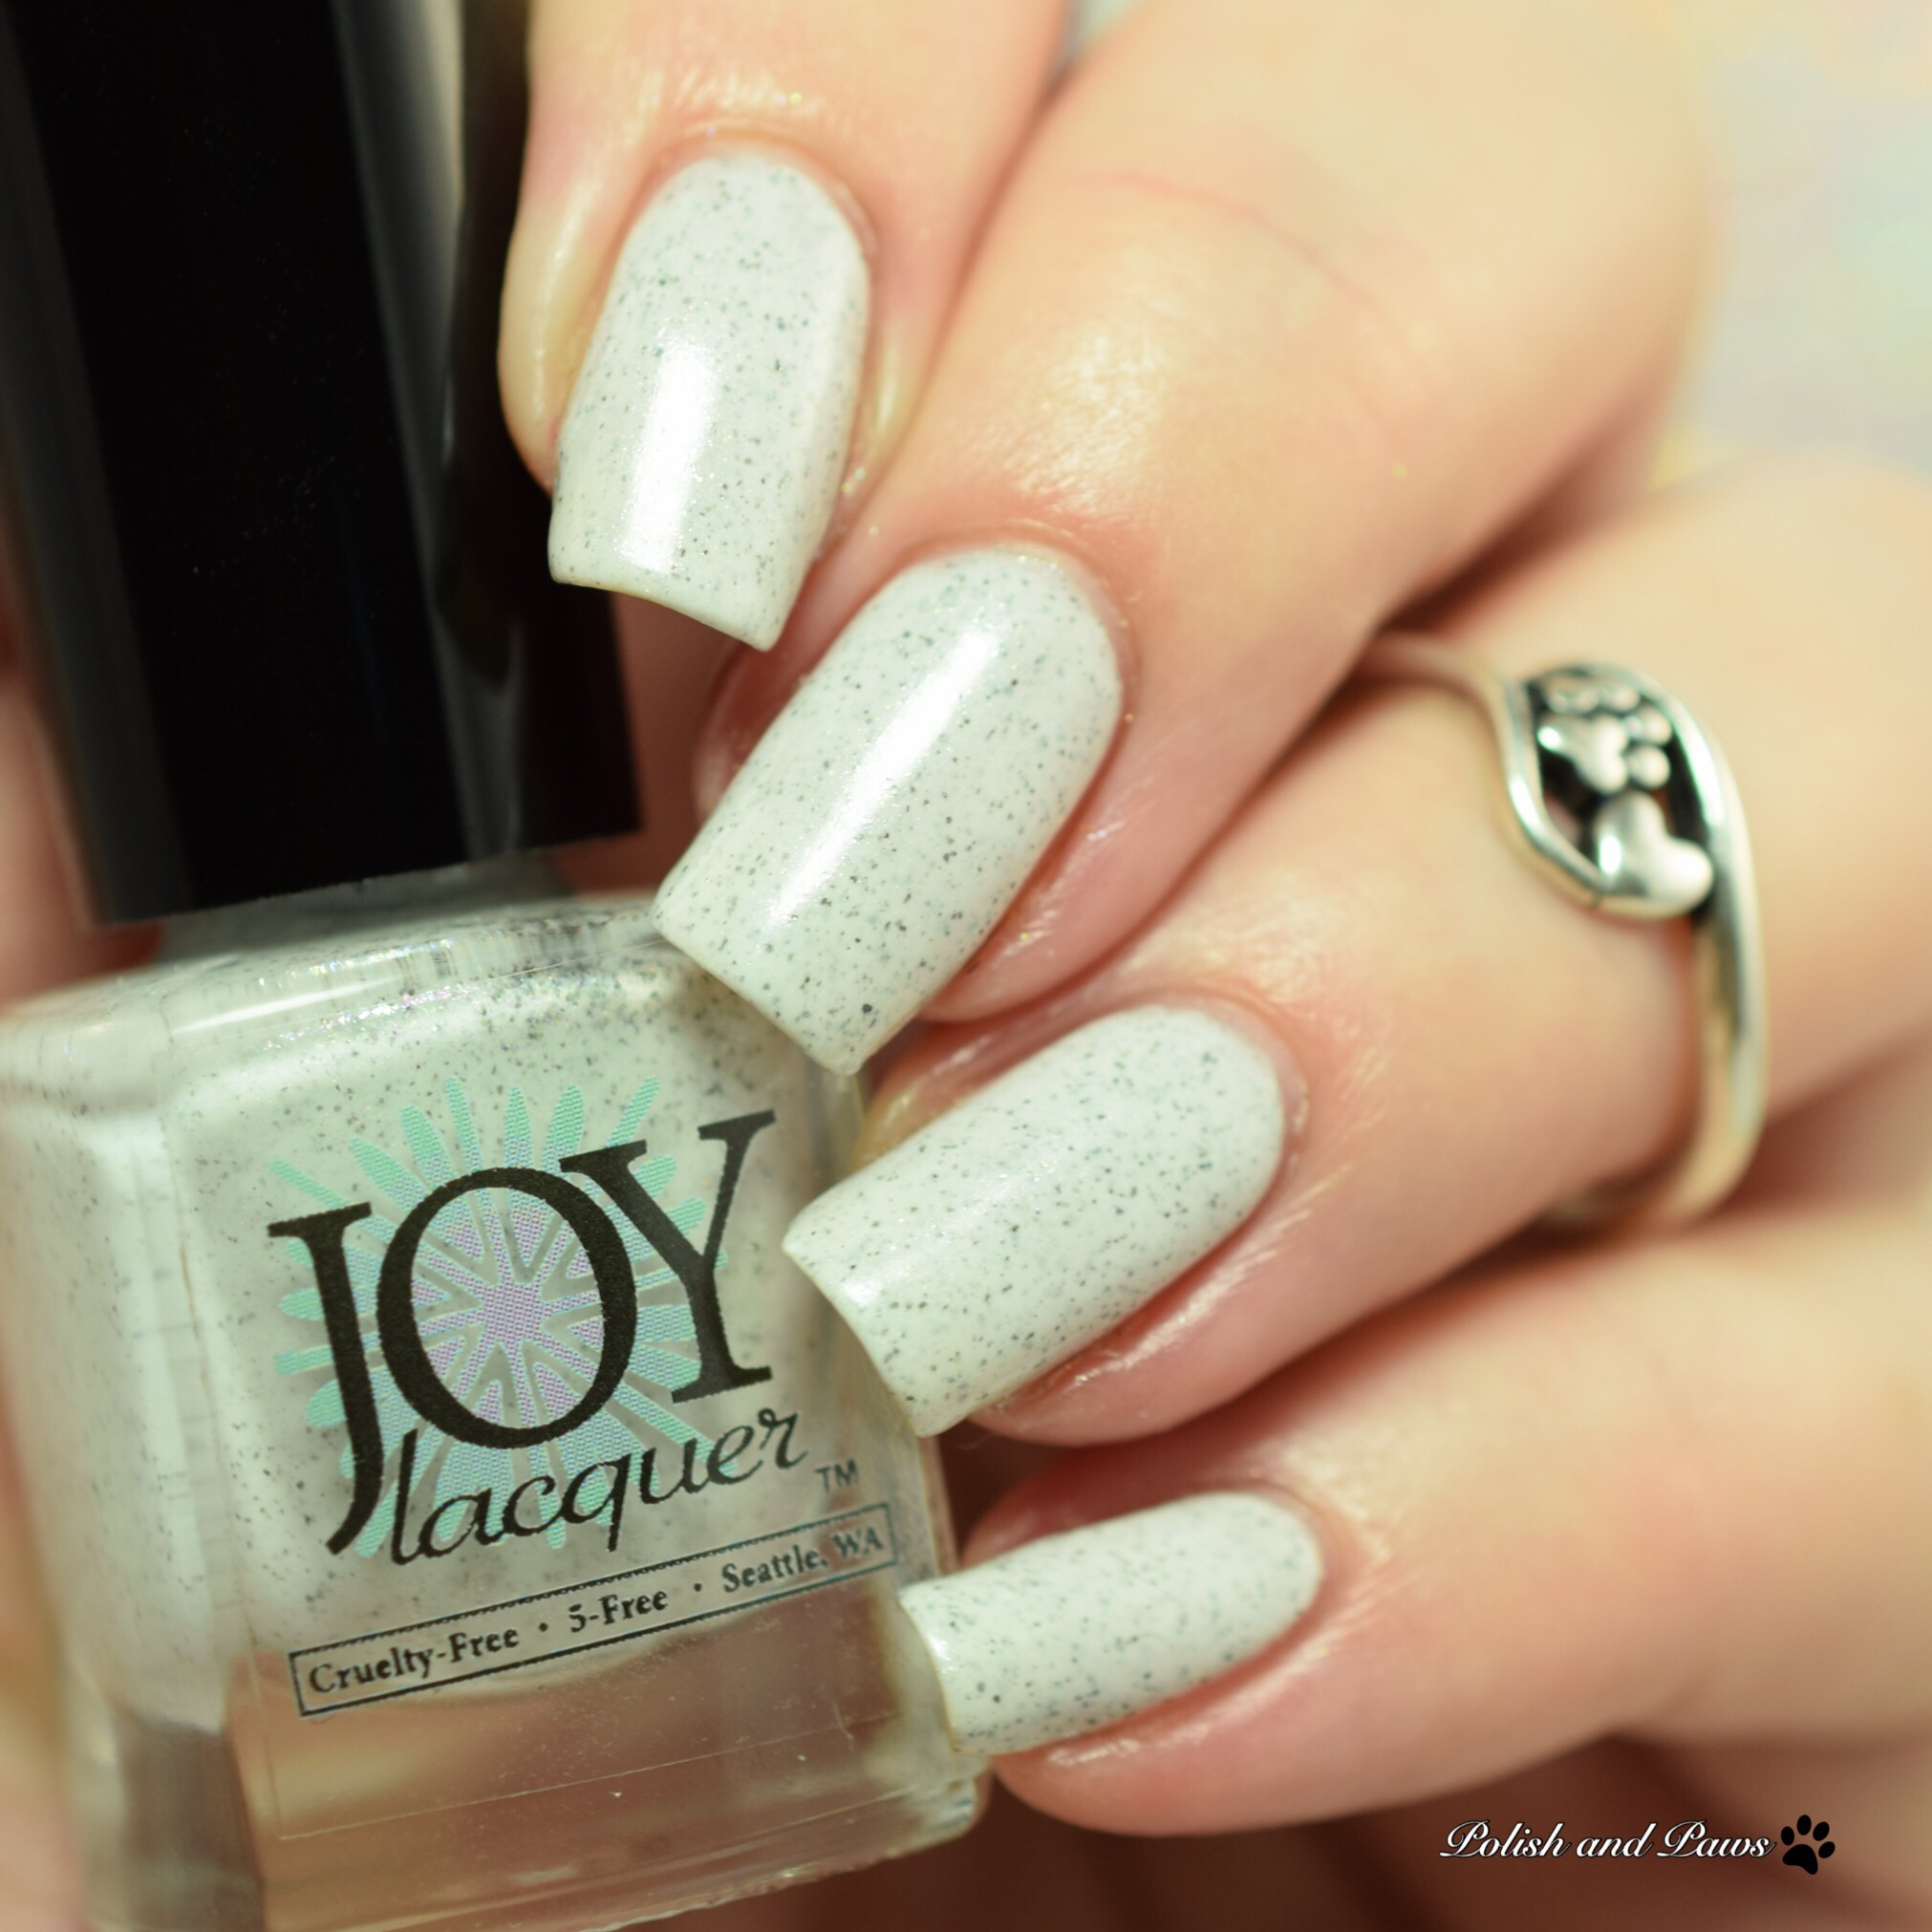 Joy Lacquer Trick or Treat